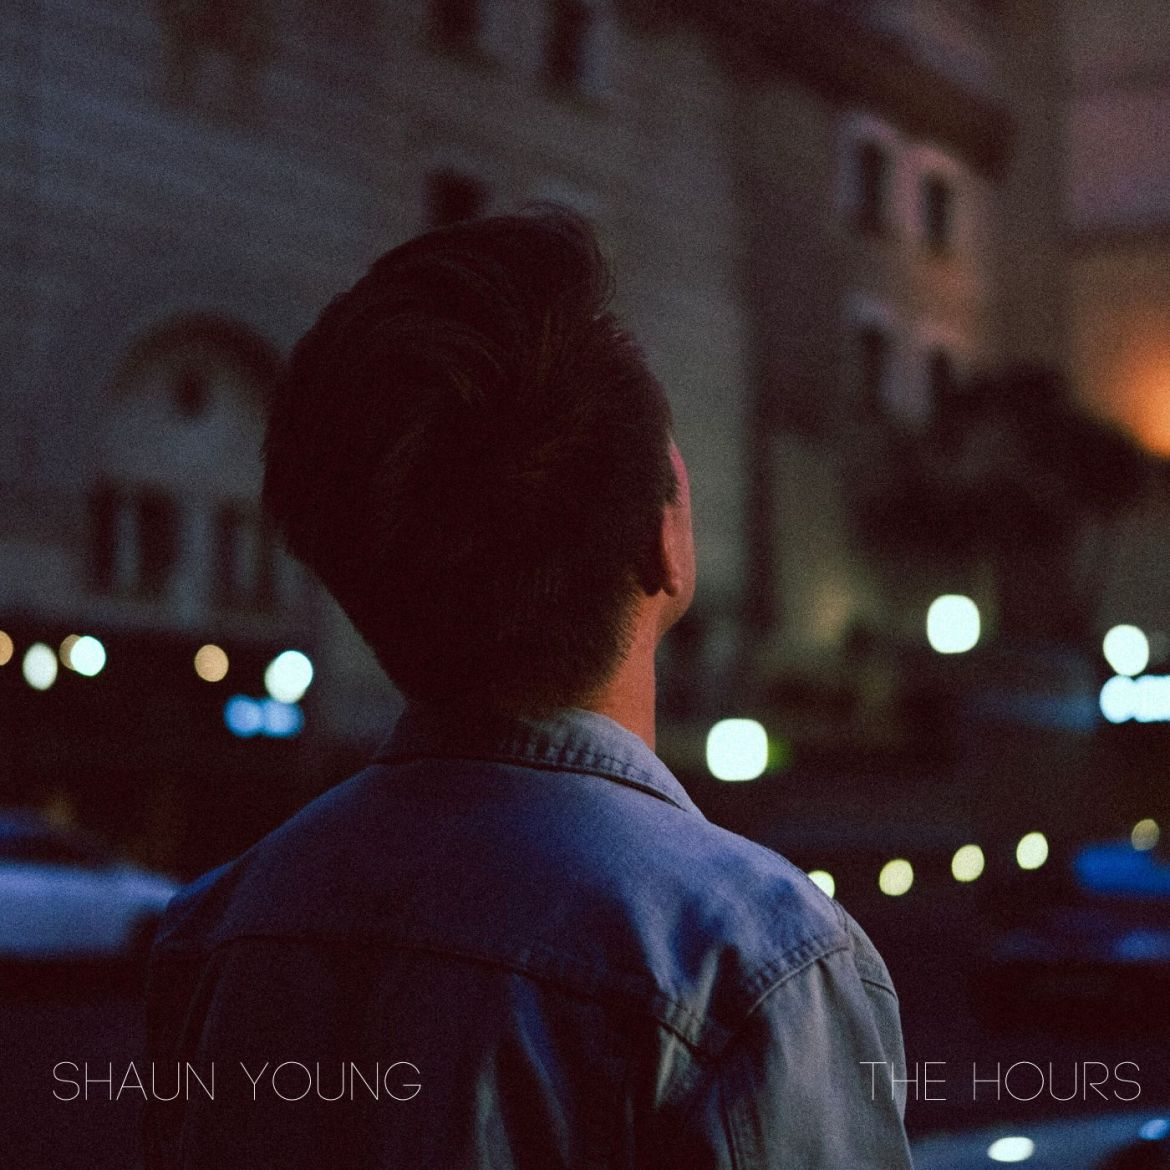 INDIE POP FIND: Shaun Young' The Hours is pure pop songwriting at its finest. Listen to it on the playlist